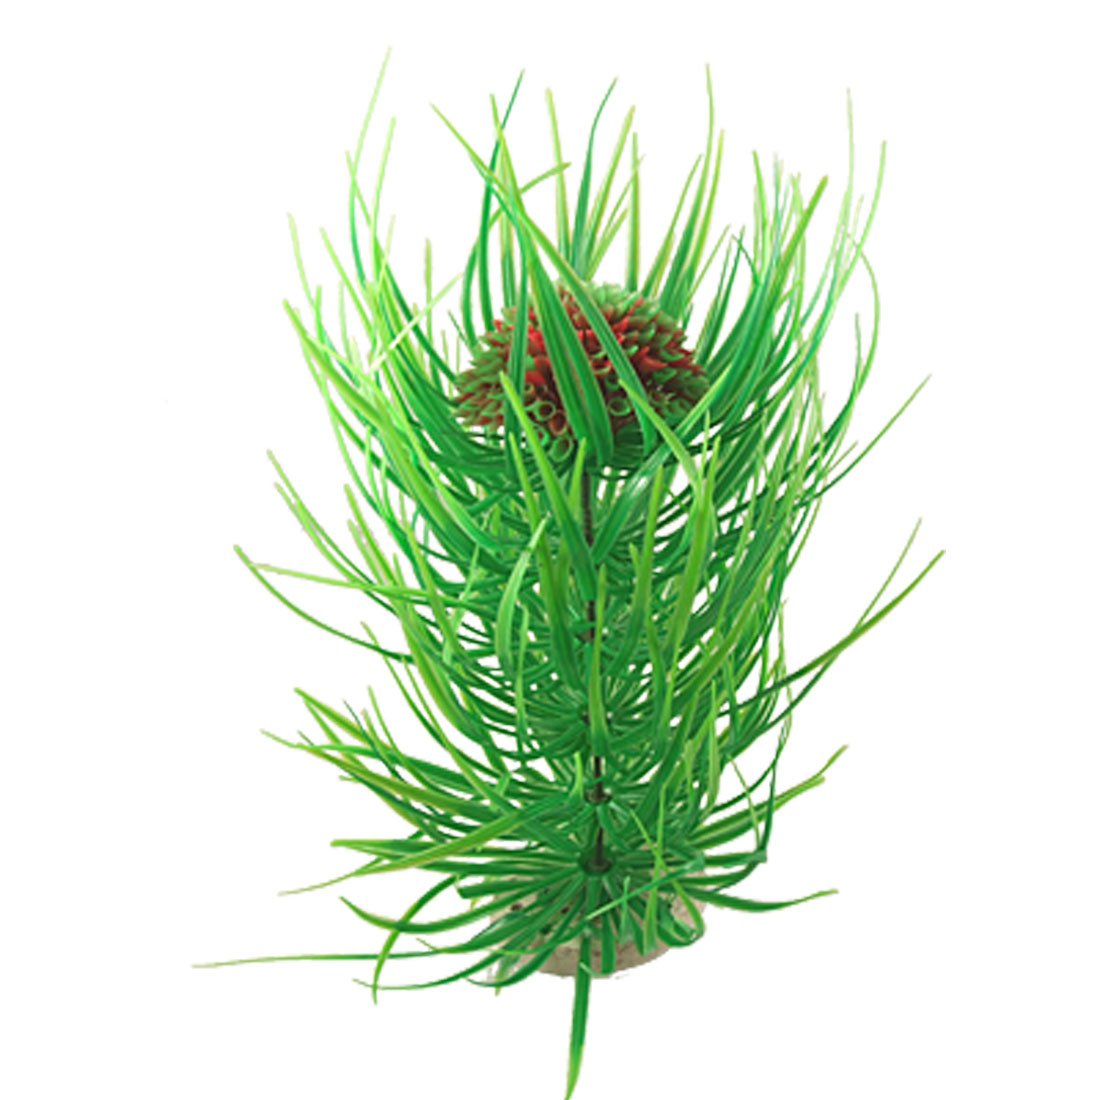 Red Green Plastic Ball Grass Plant Decor for Fish Tank Aquarium